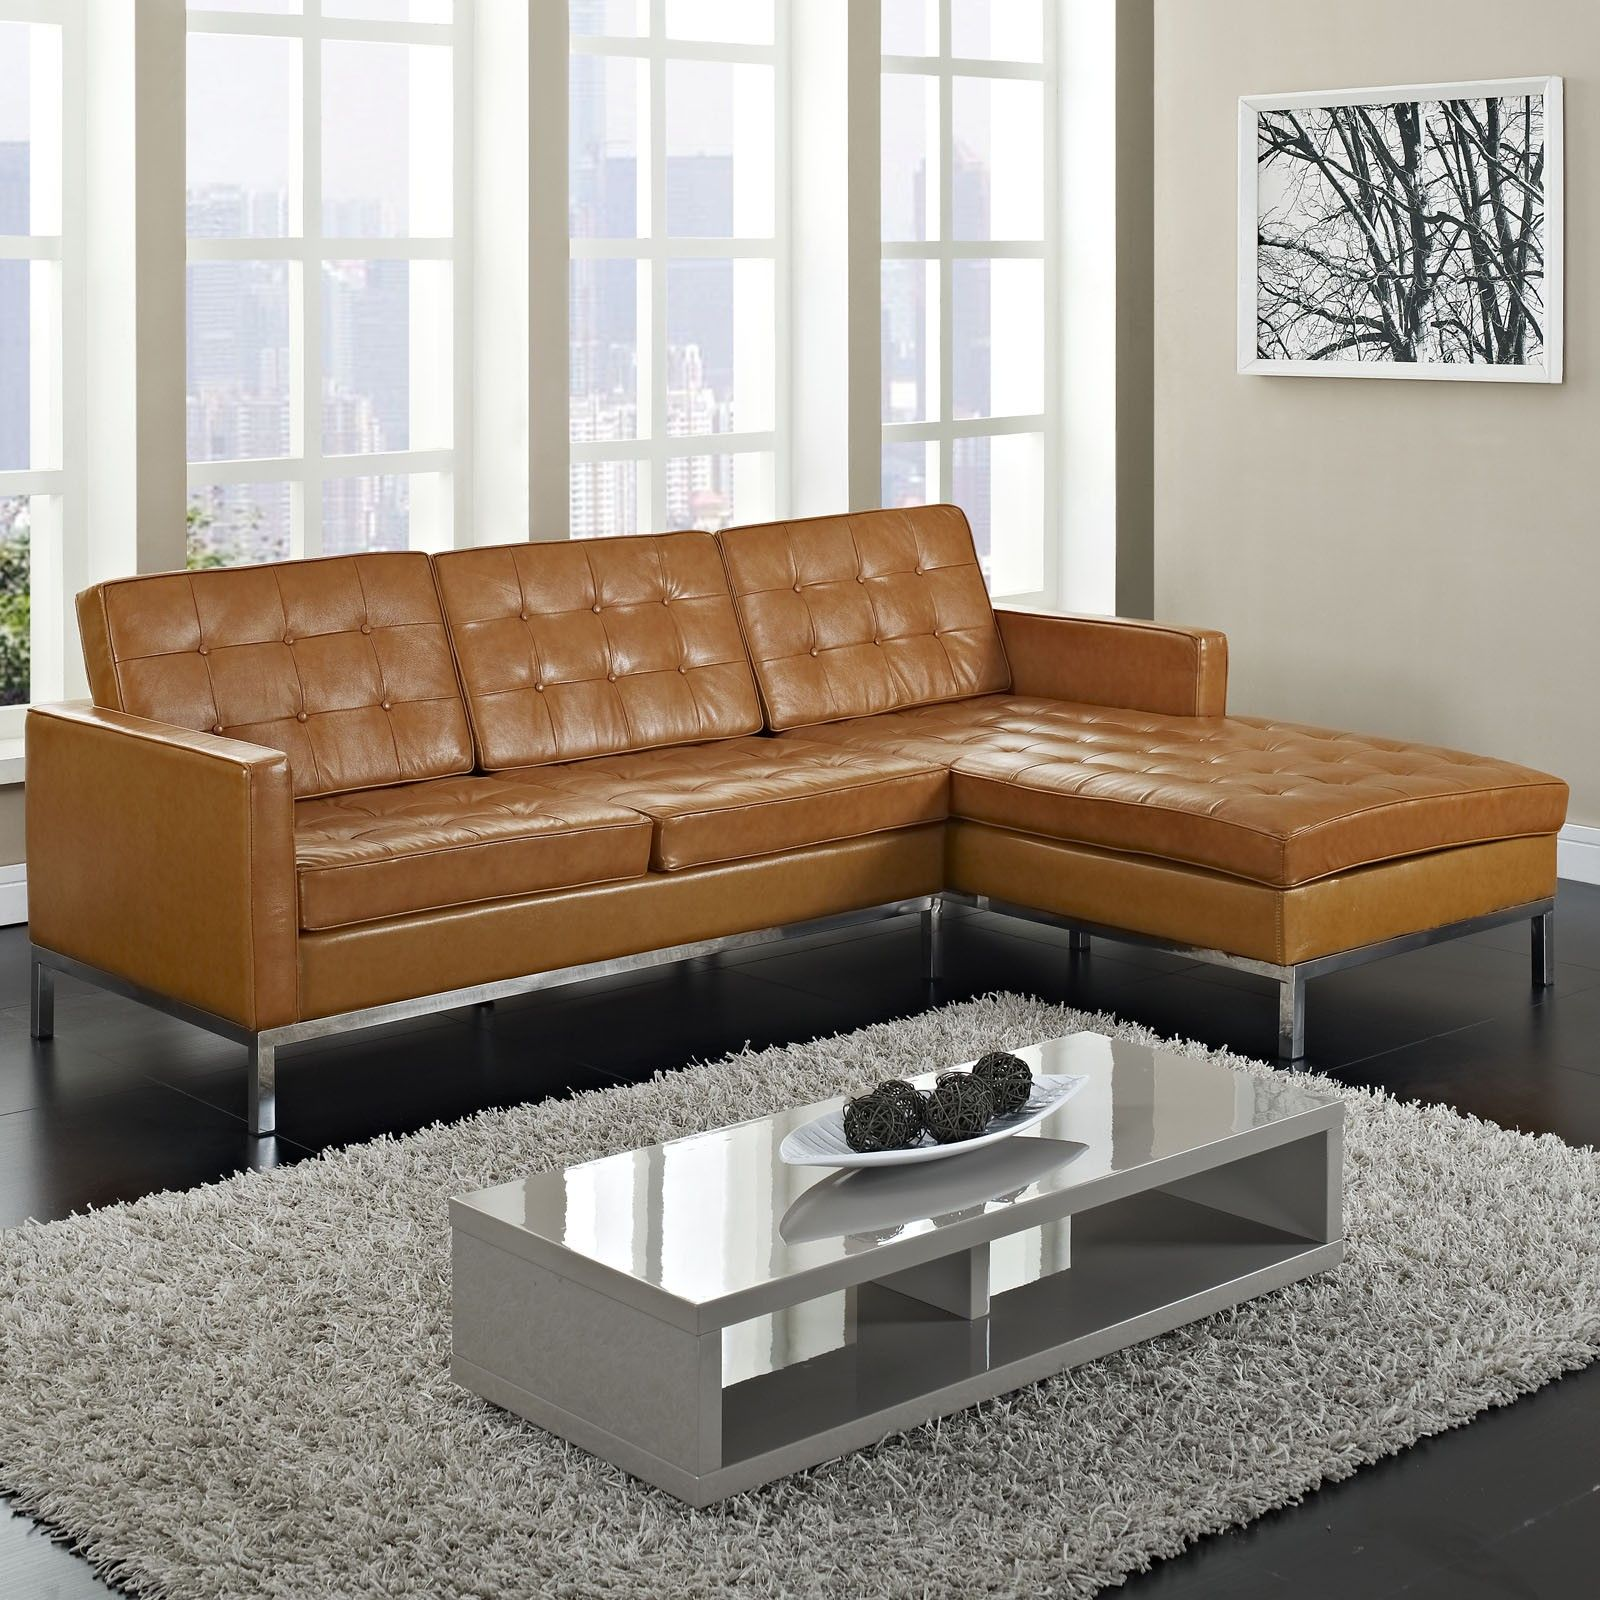 Living room ideas tan sofa - Furniture Maximizing Small Living Room Spaces With 3 Piece Brown Leather Tufted Sectional Sofa With